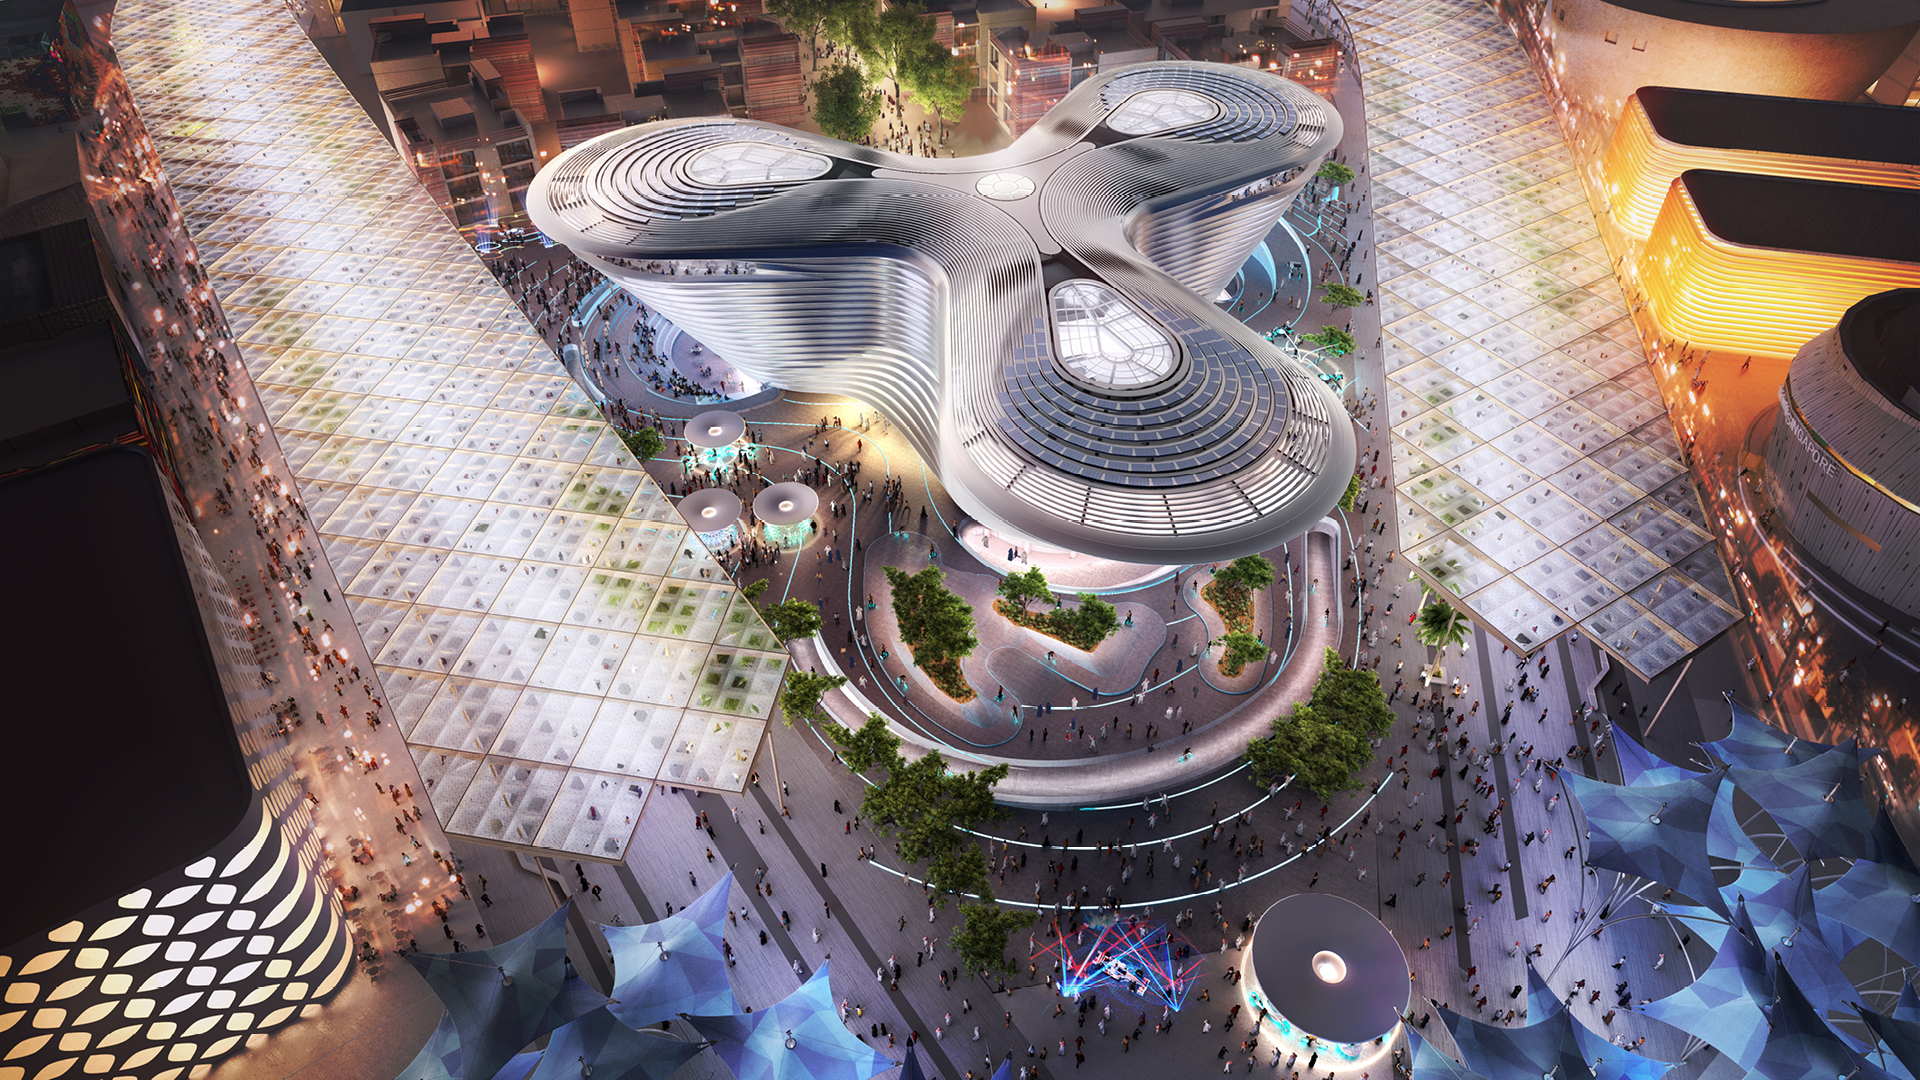 The Mobility Pavilion at the Expo 2020 Dubai designed by Foster + Partners | | Mobility | Pavilion | Expo 2020| Dubai| STIRworld